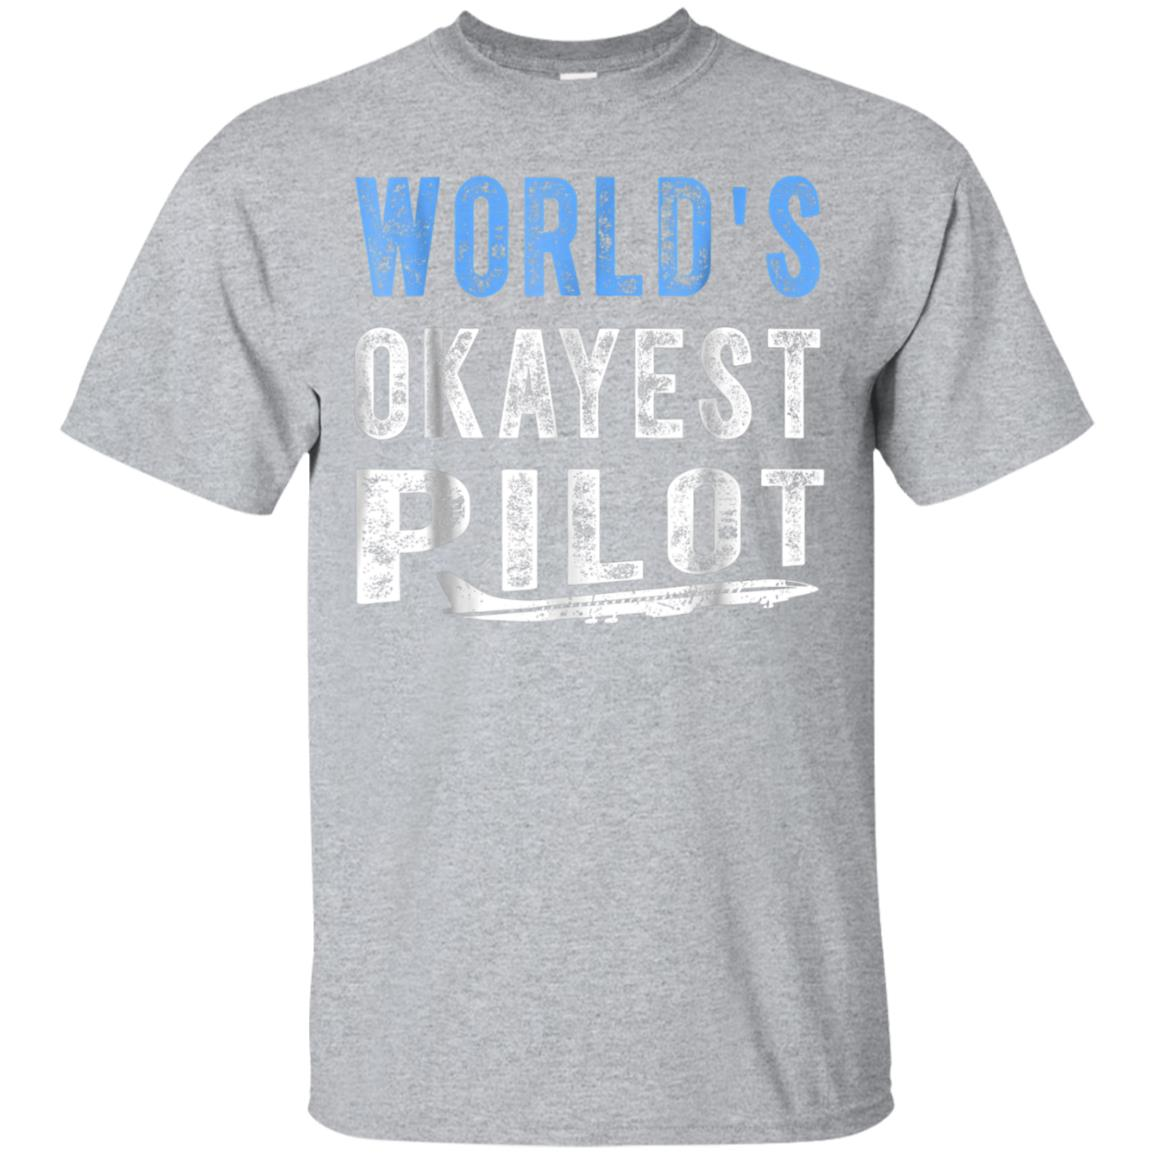 World's Okayest Pilot TShirt Aviation Air Humor 99promocode